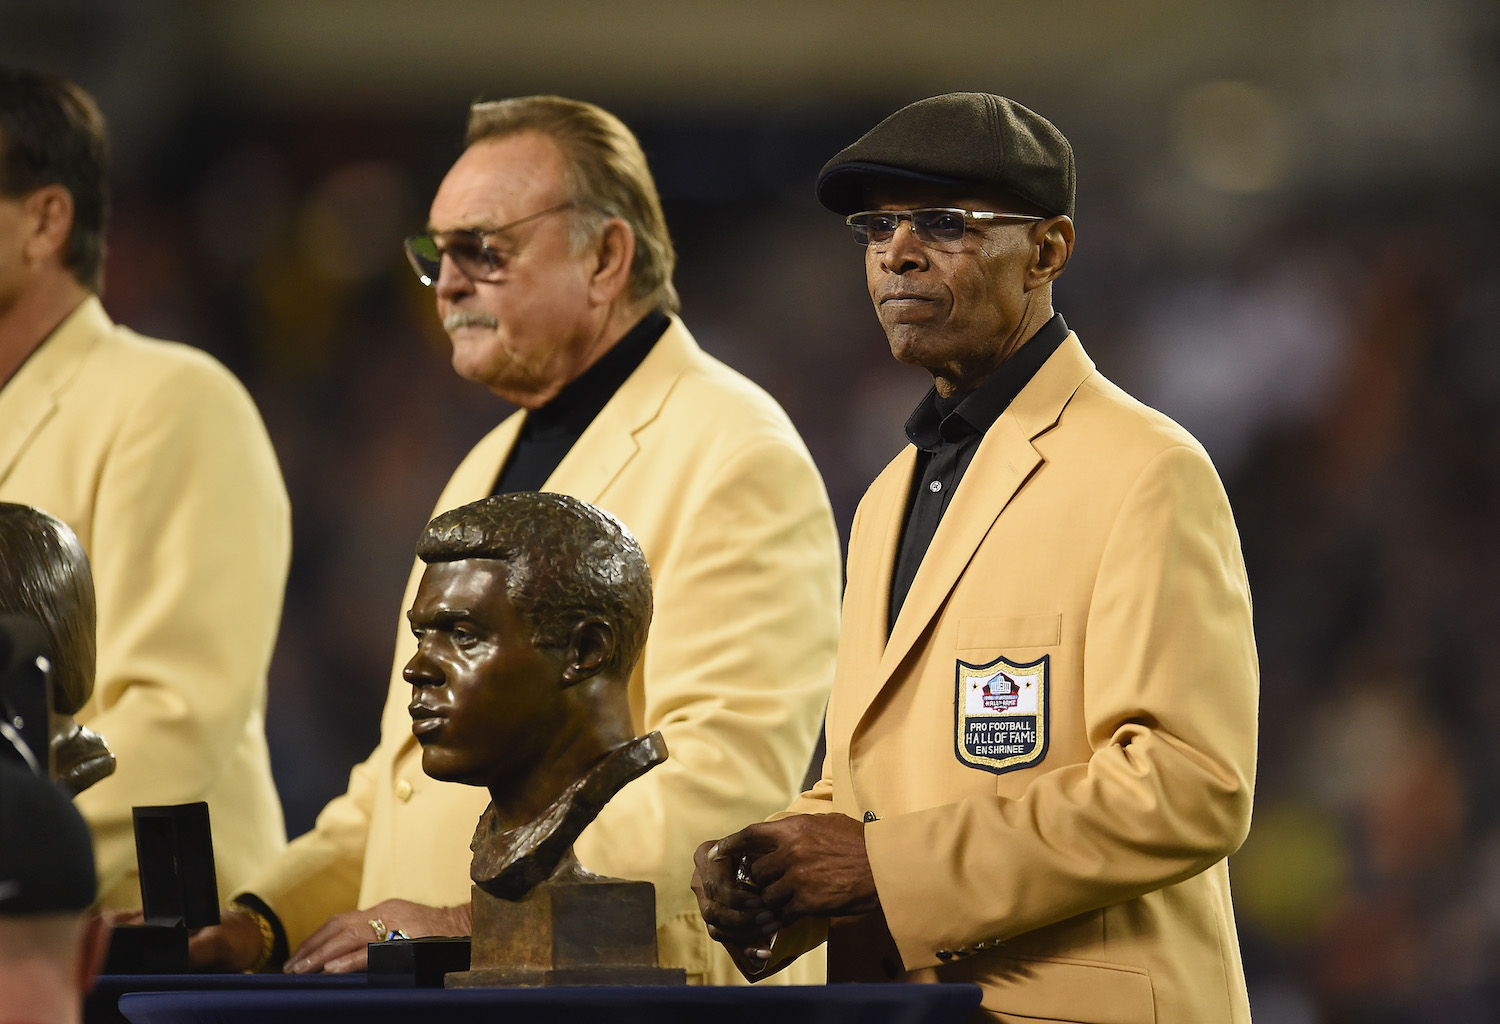 Gale Sayers is one of the greatest NFL players of all time, but he's been battling dementia since his diagnosis in 2017.